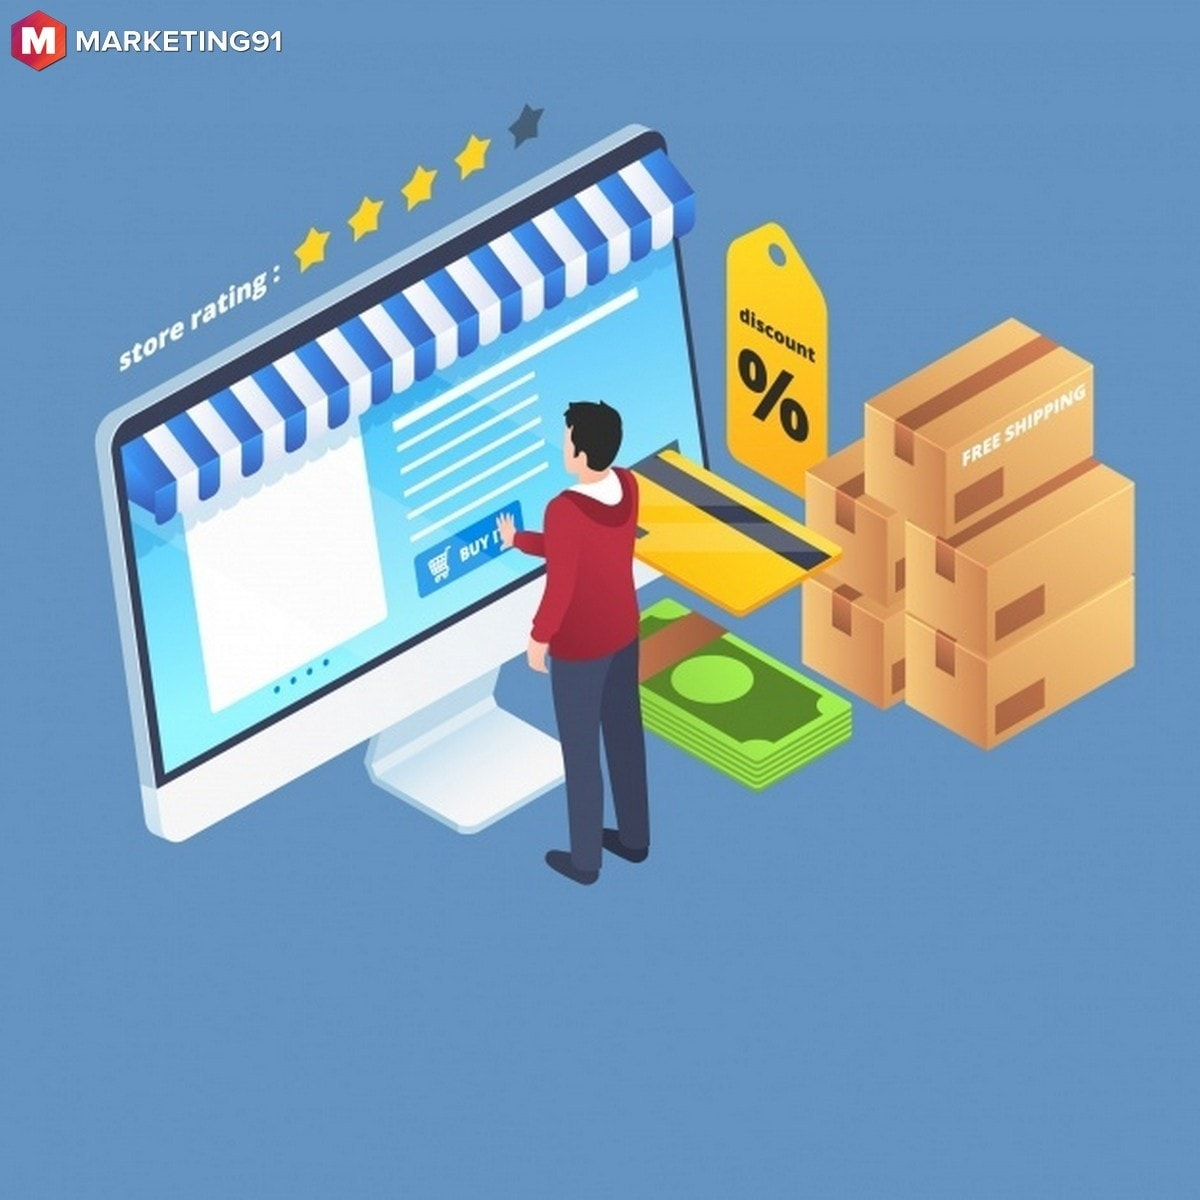 Types of ecommerce business